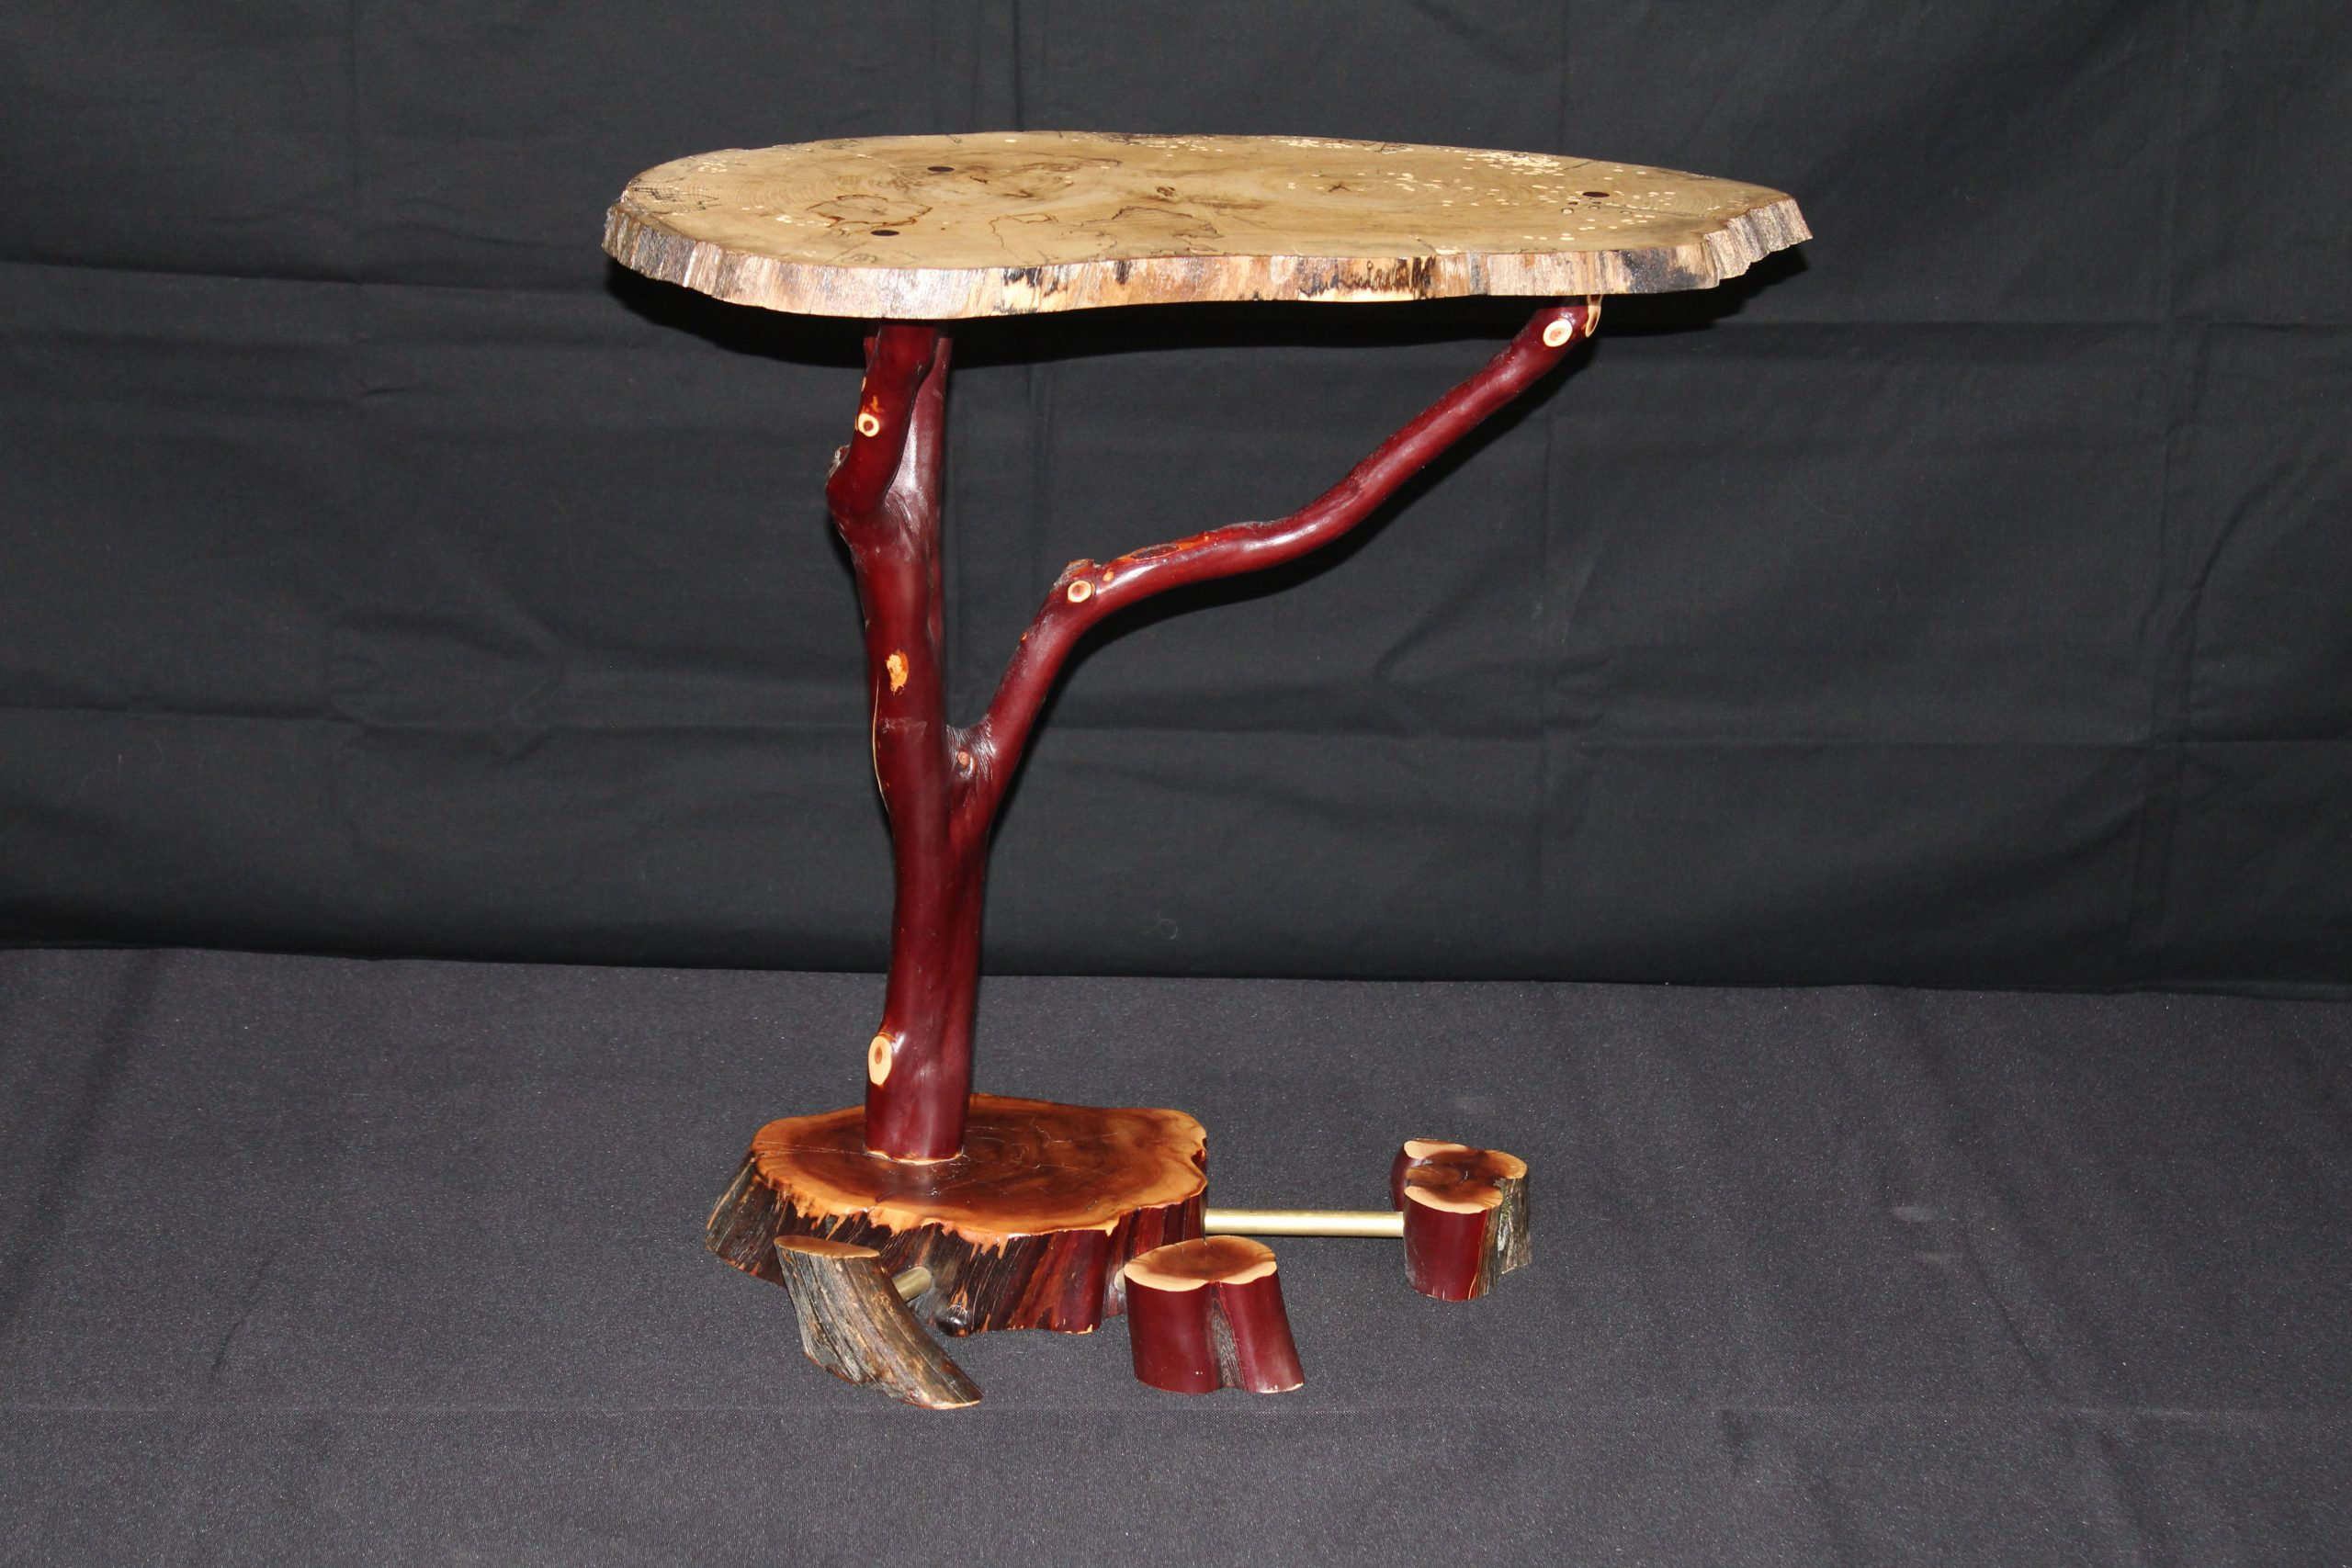 artisan side table with manzanita wood base and stone top